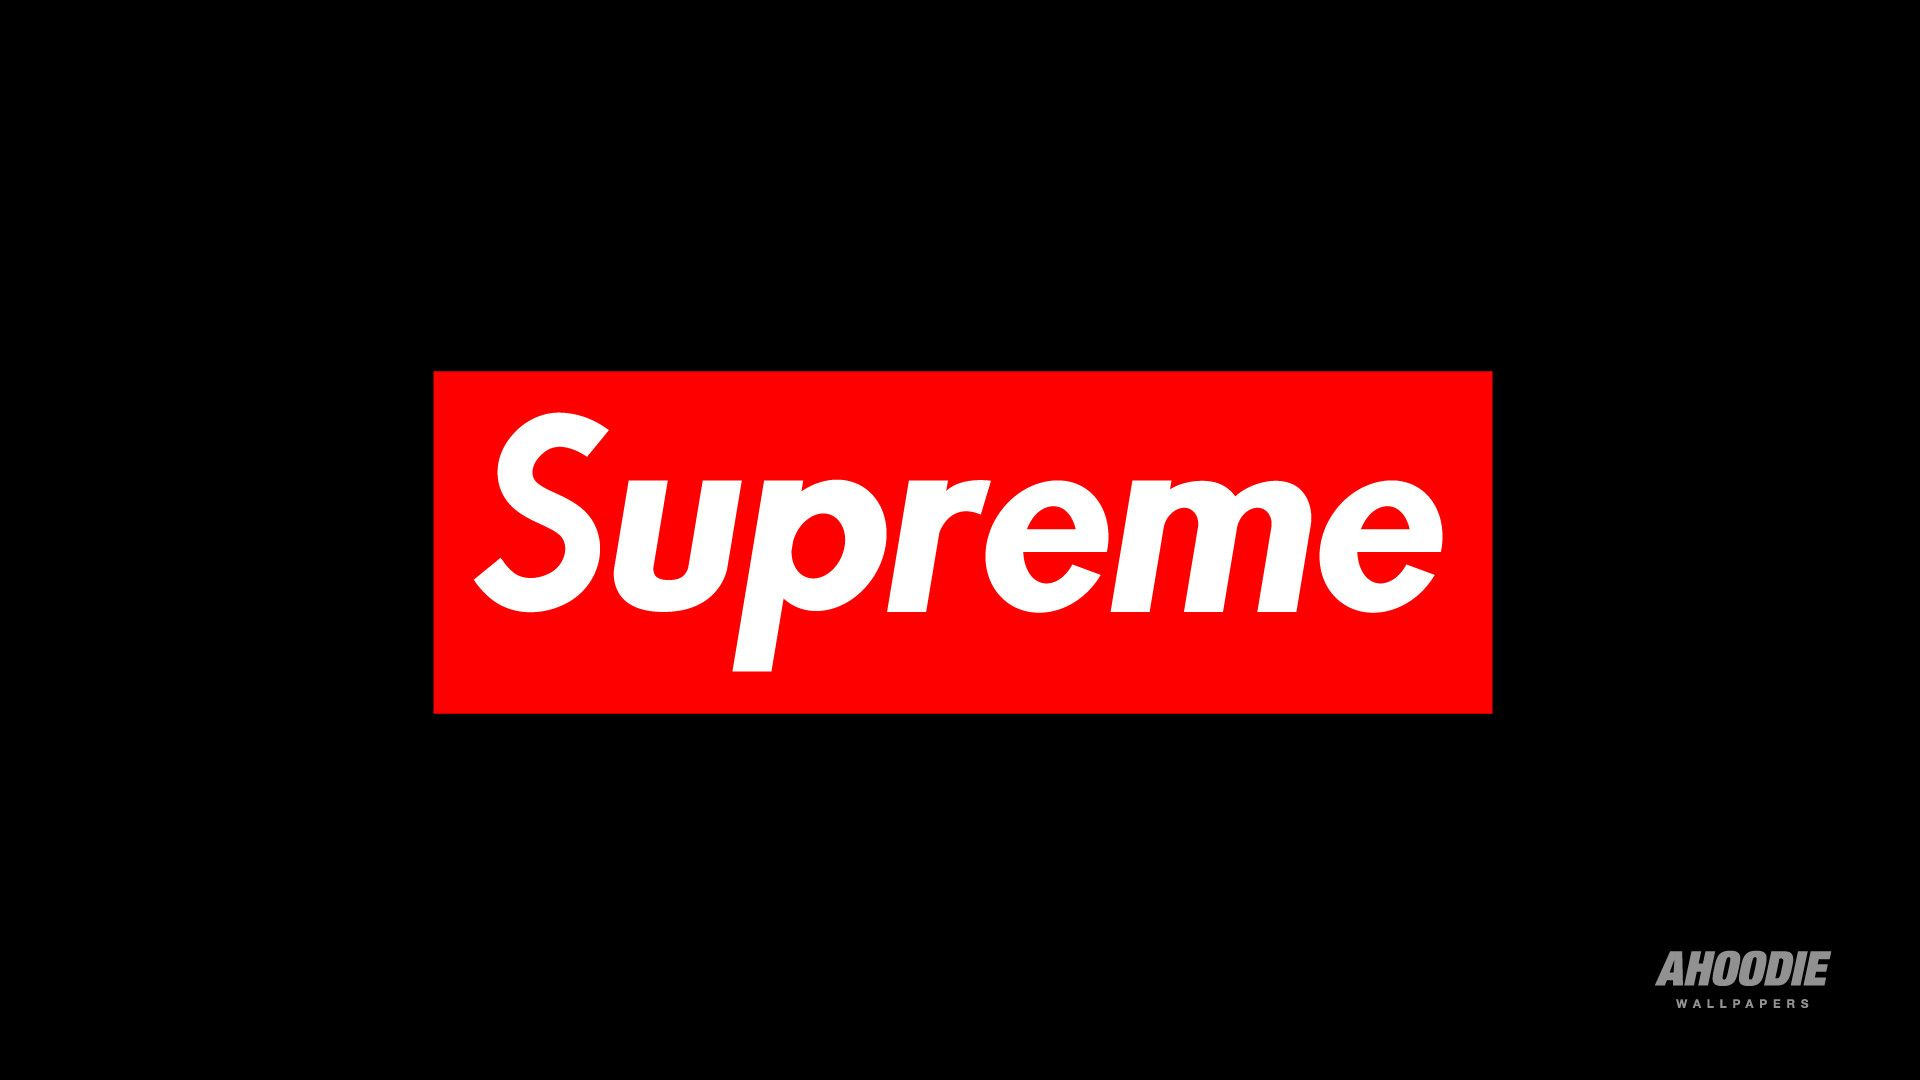 Supreme Dope PC Wallpapers   Top Supreme Dope PC Backgrounds 1920x1080